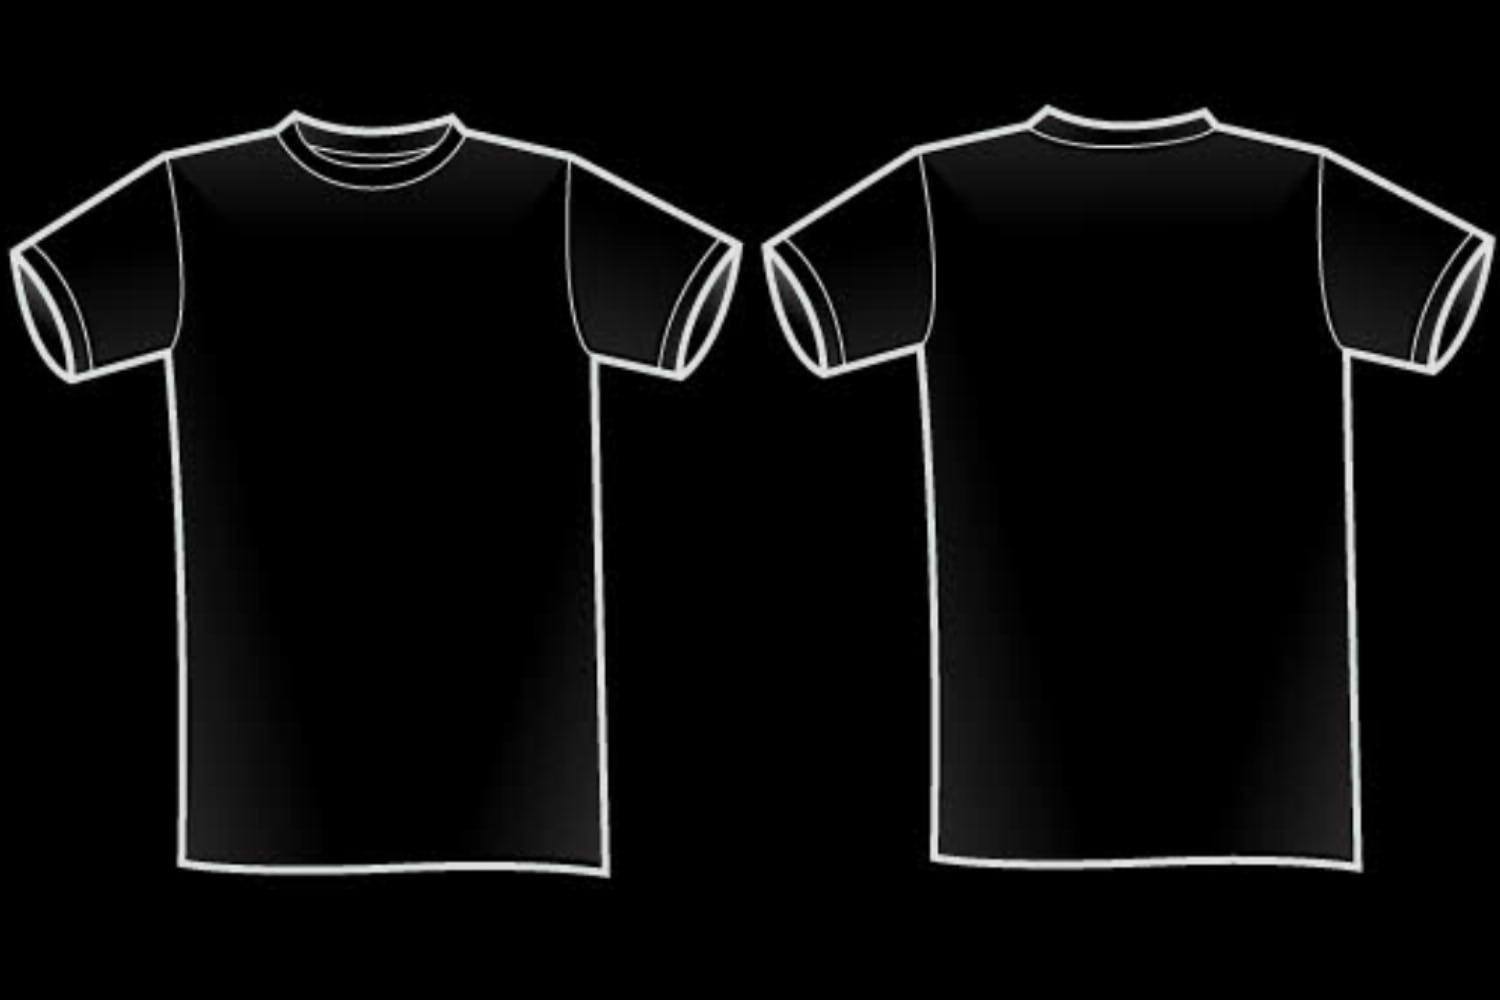 Black t shirt design template - Plain Black T Shirt 36 Widescreen Wallpaper Hdblackwallpaper Com